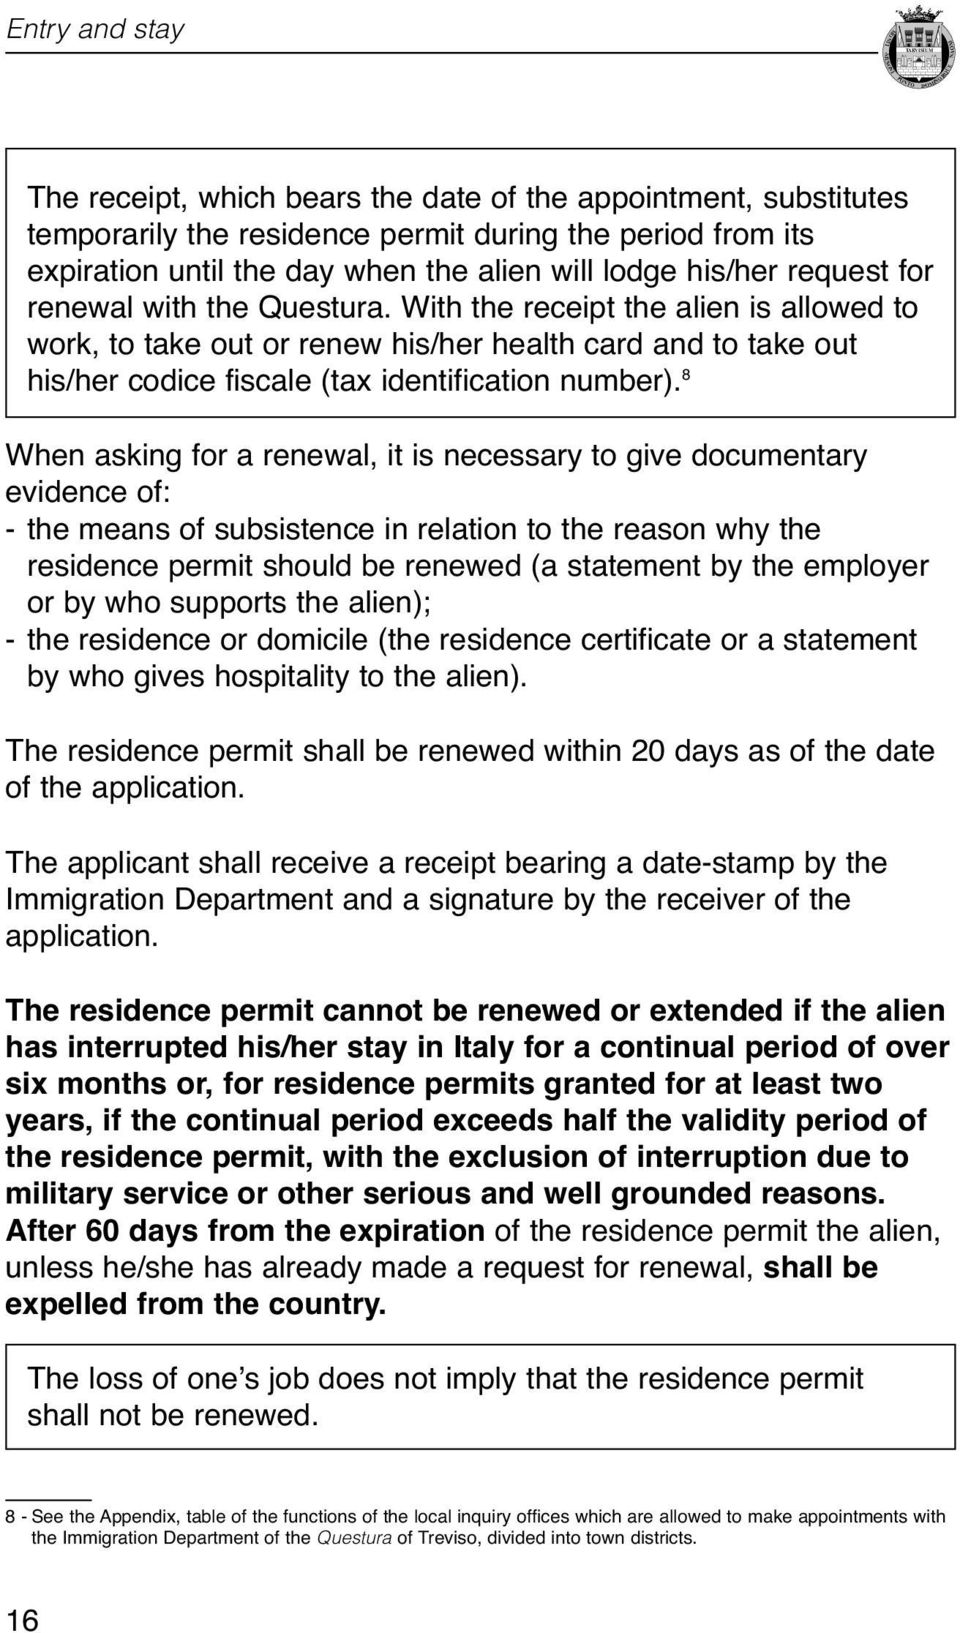 asking for a renewal, it is necessary to give documentary evidence of: - the means of subsistence in relation to the reason why the residence permit should be renewed (a statement by the employer or